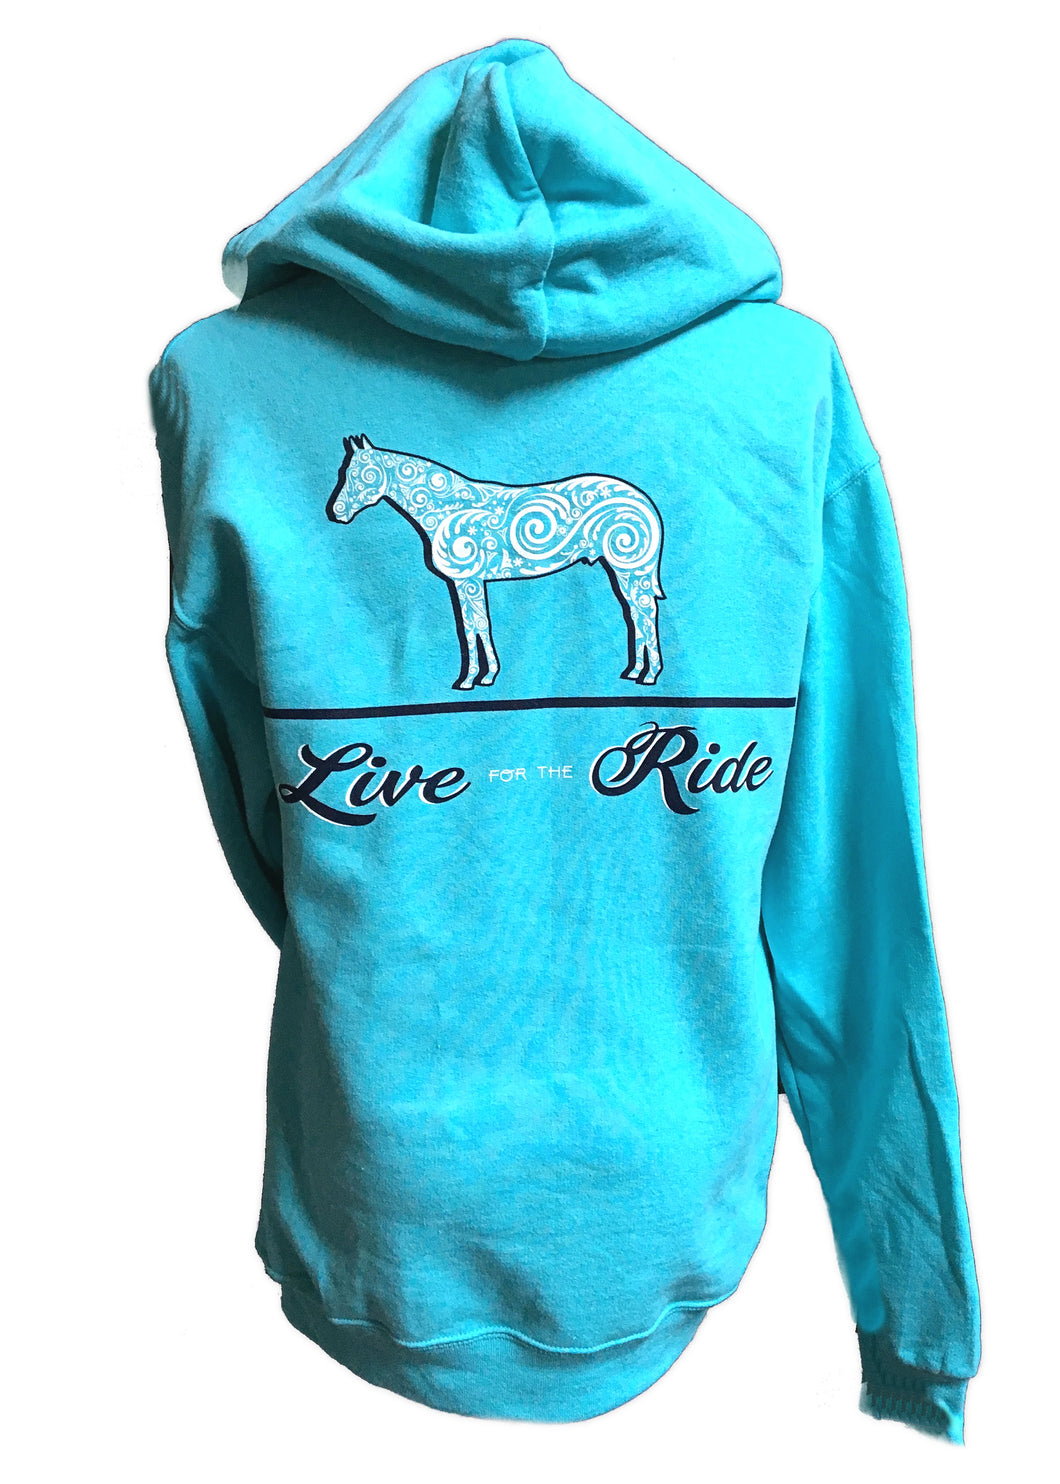 Doc's Horse Hoodie - Live for the Ride